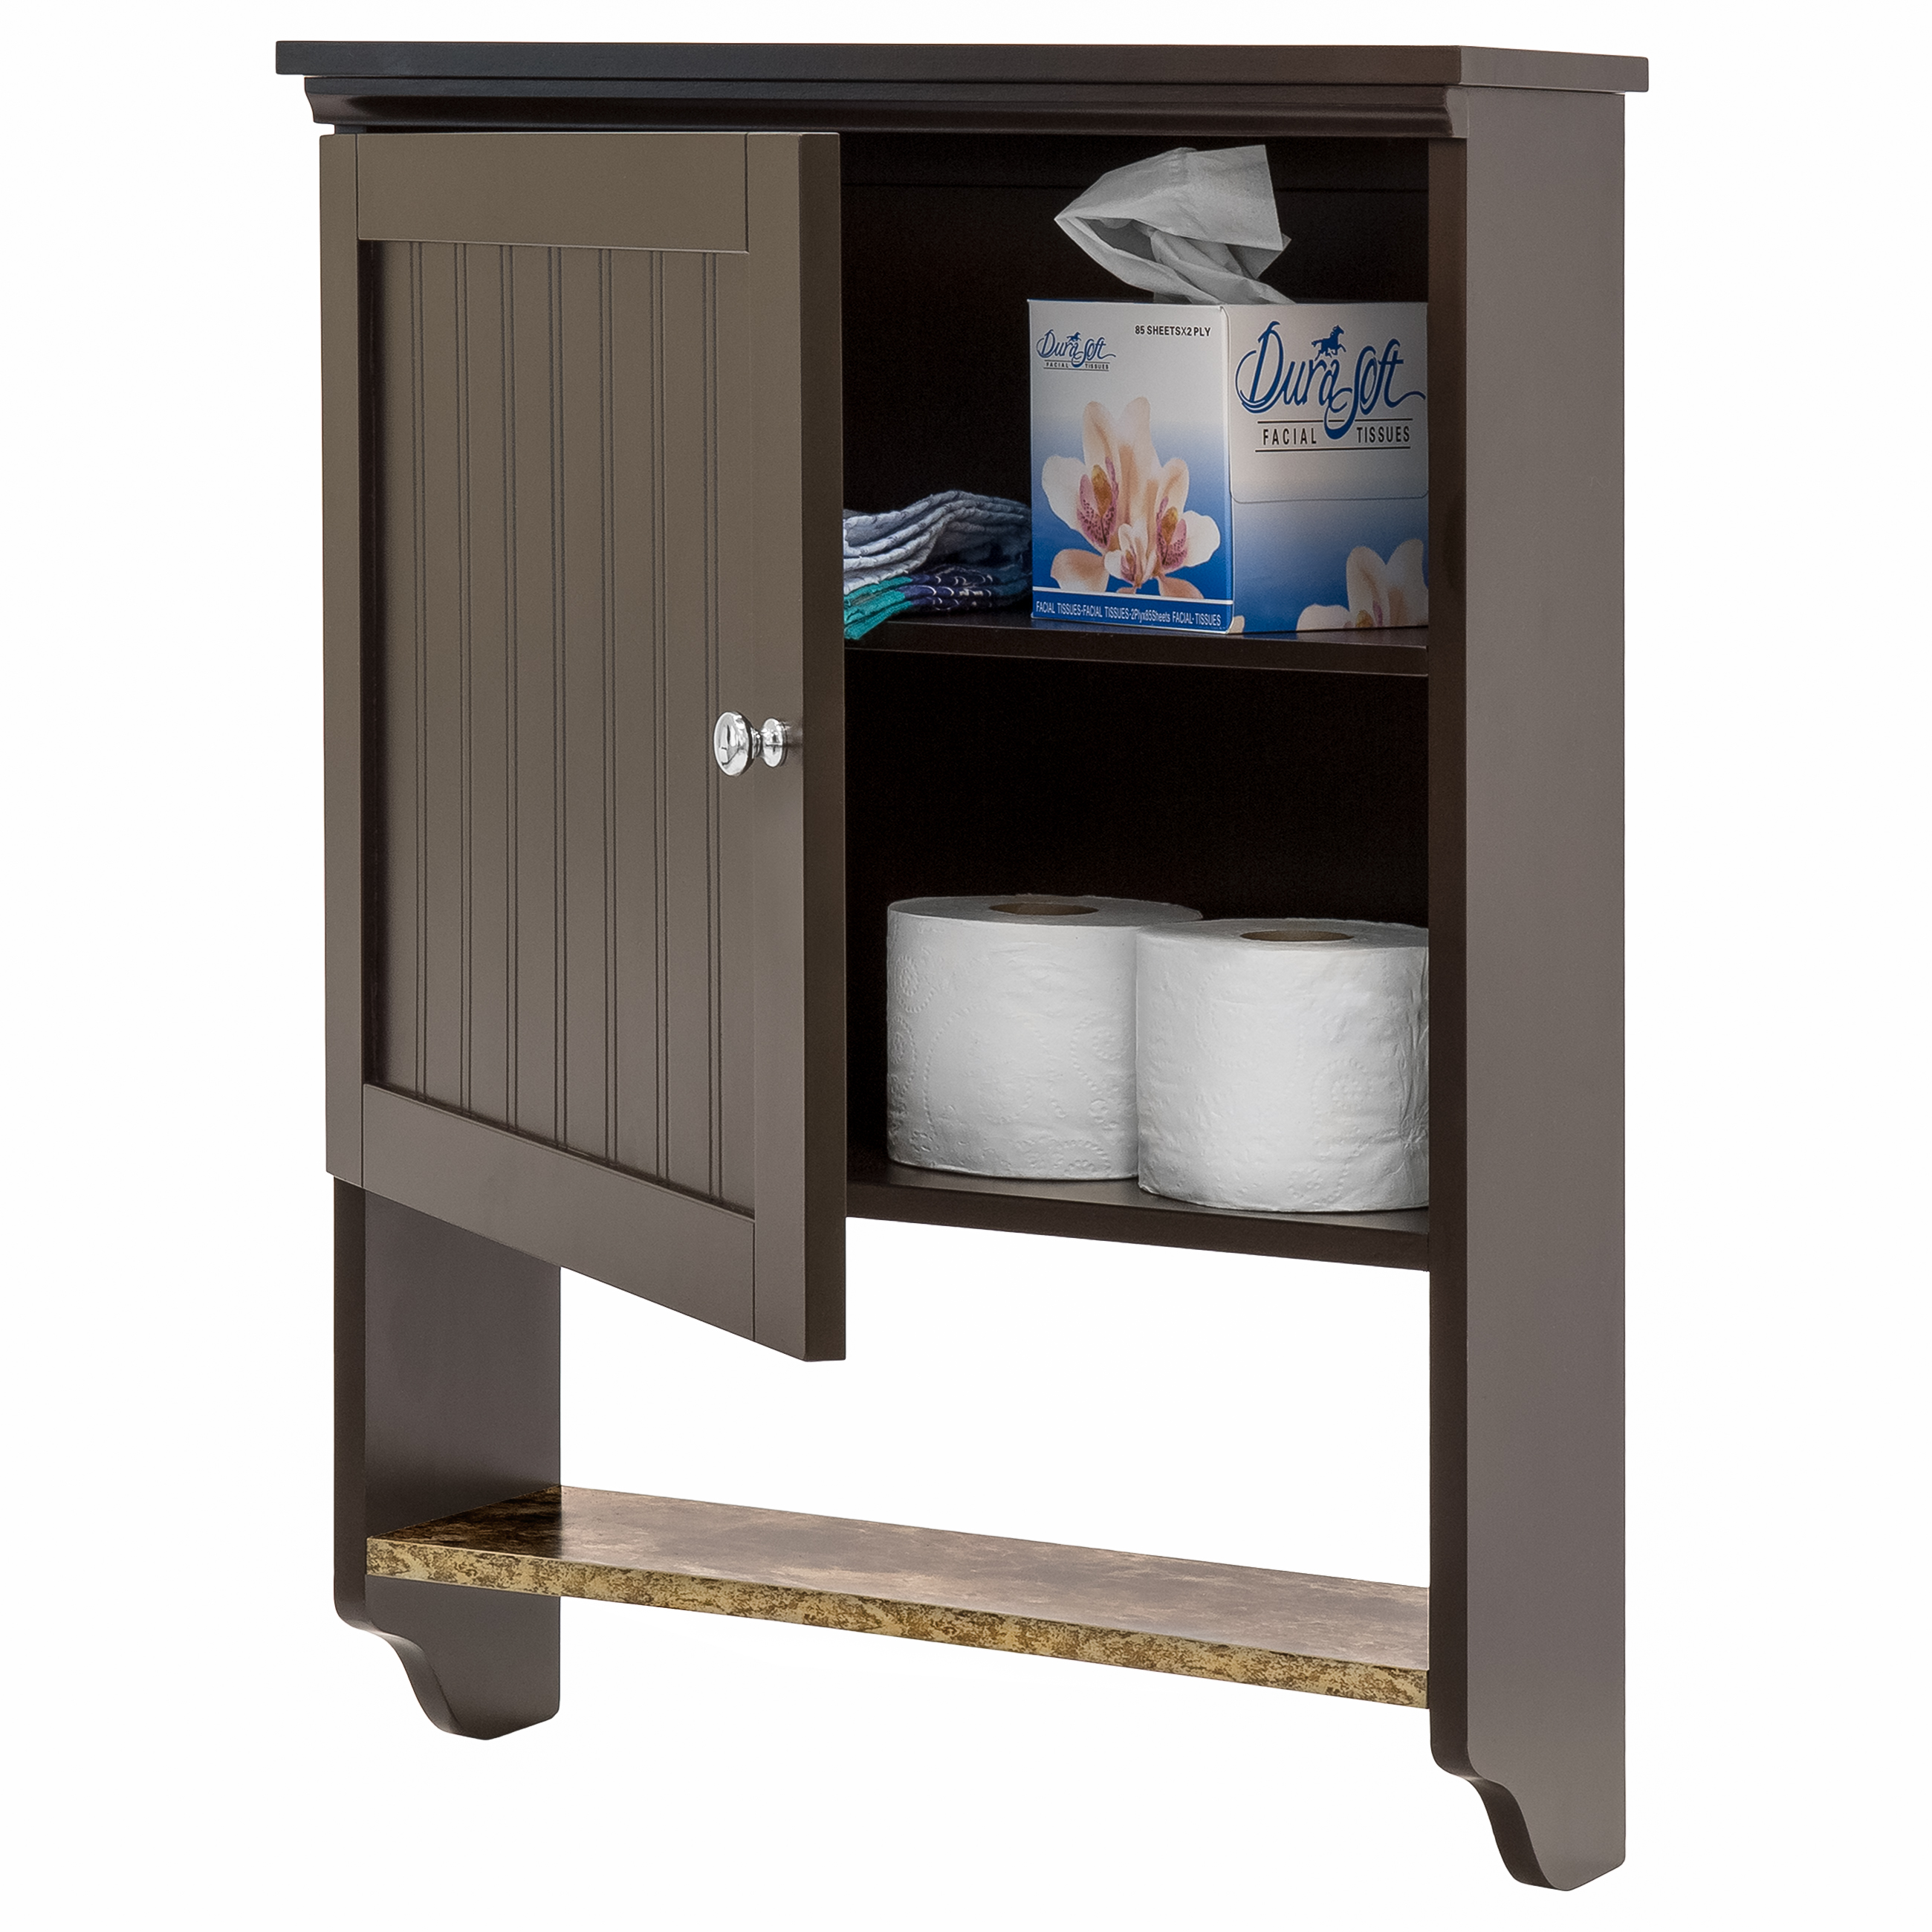 Best Choice Products Bathroom Wall Mounted Hanging Storage Cabinet Furniture w/ Open Shelf, Versatile Door - Espresso